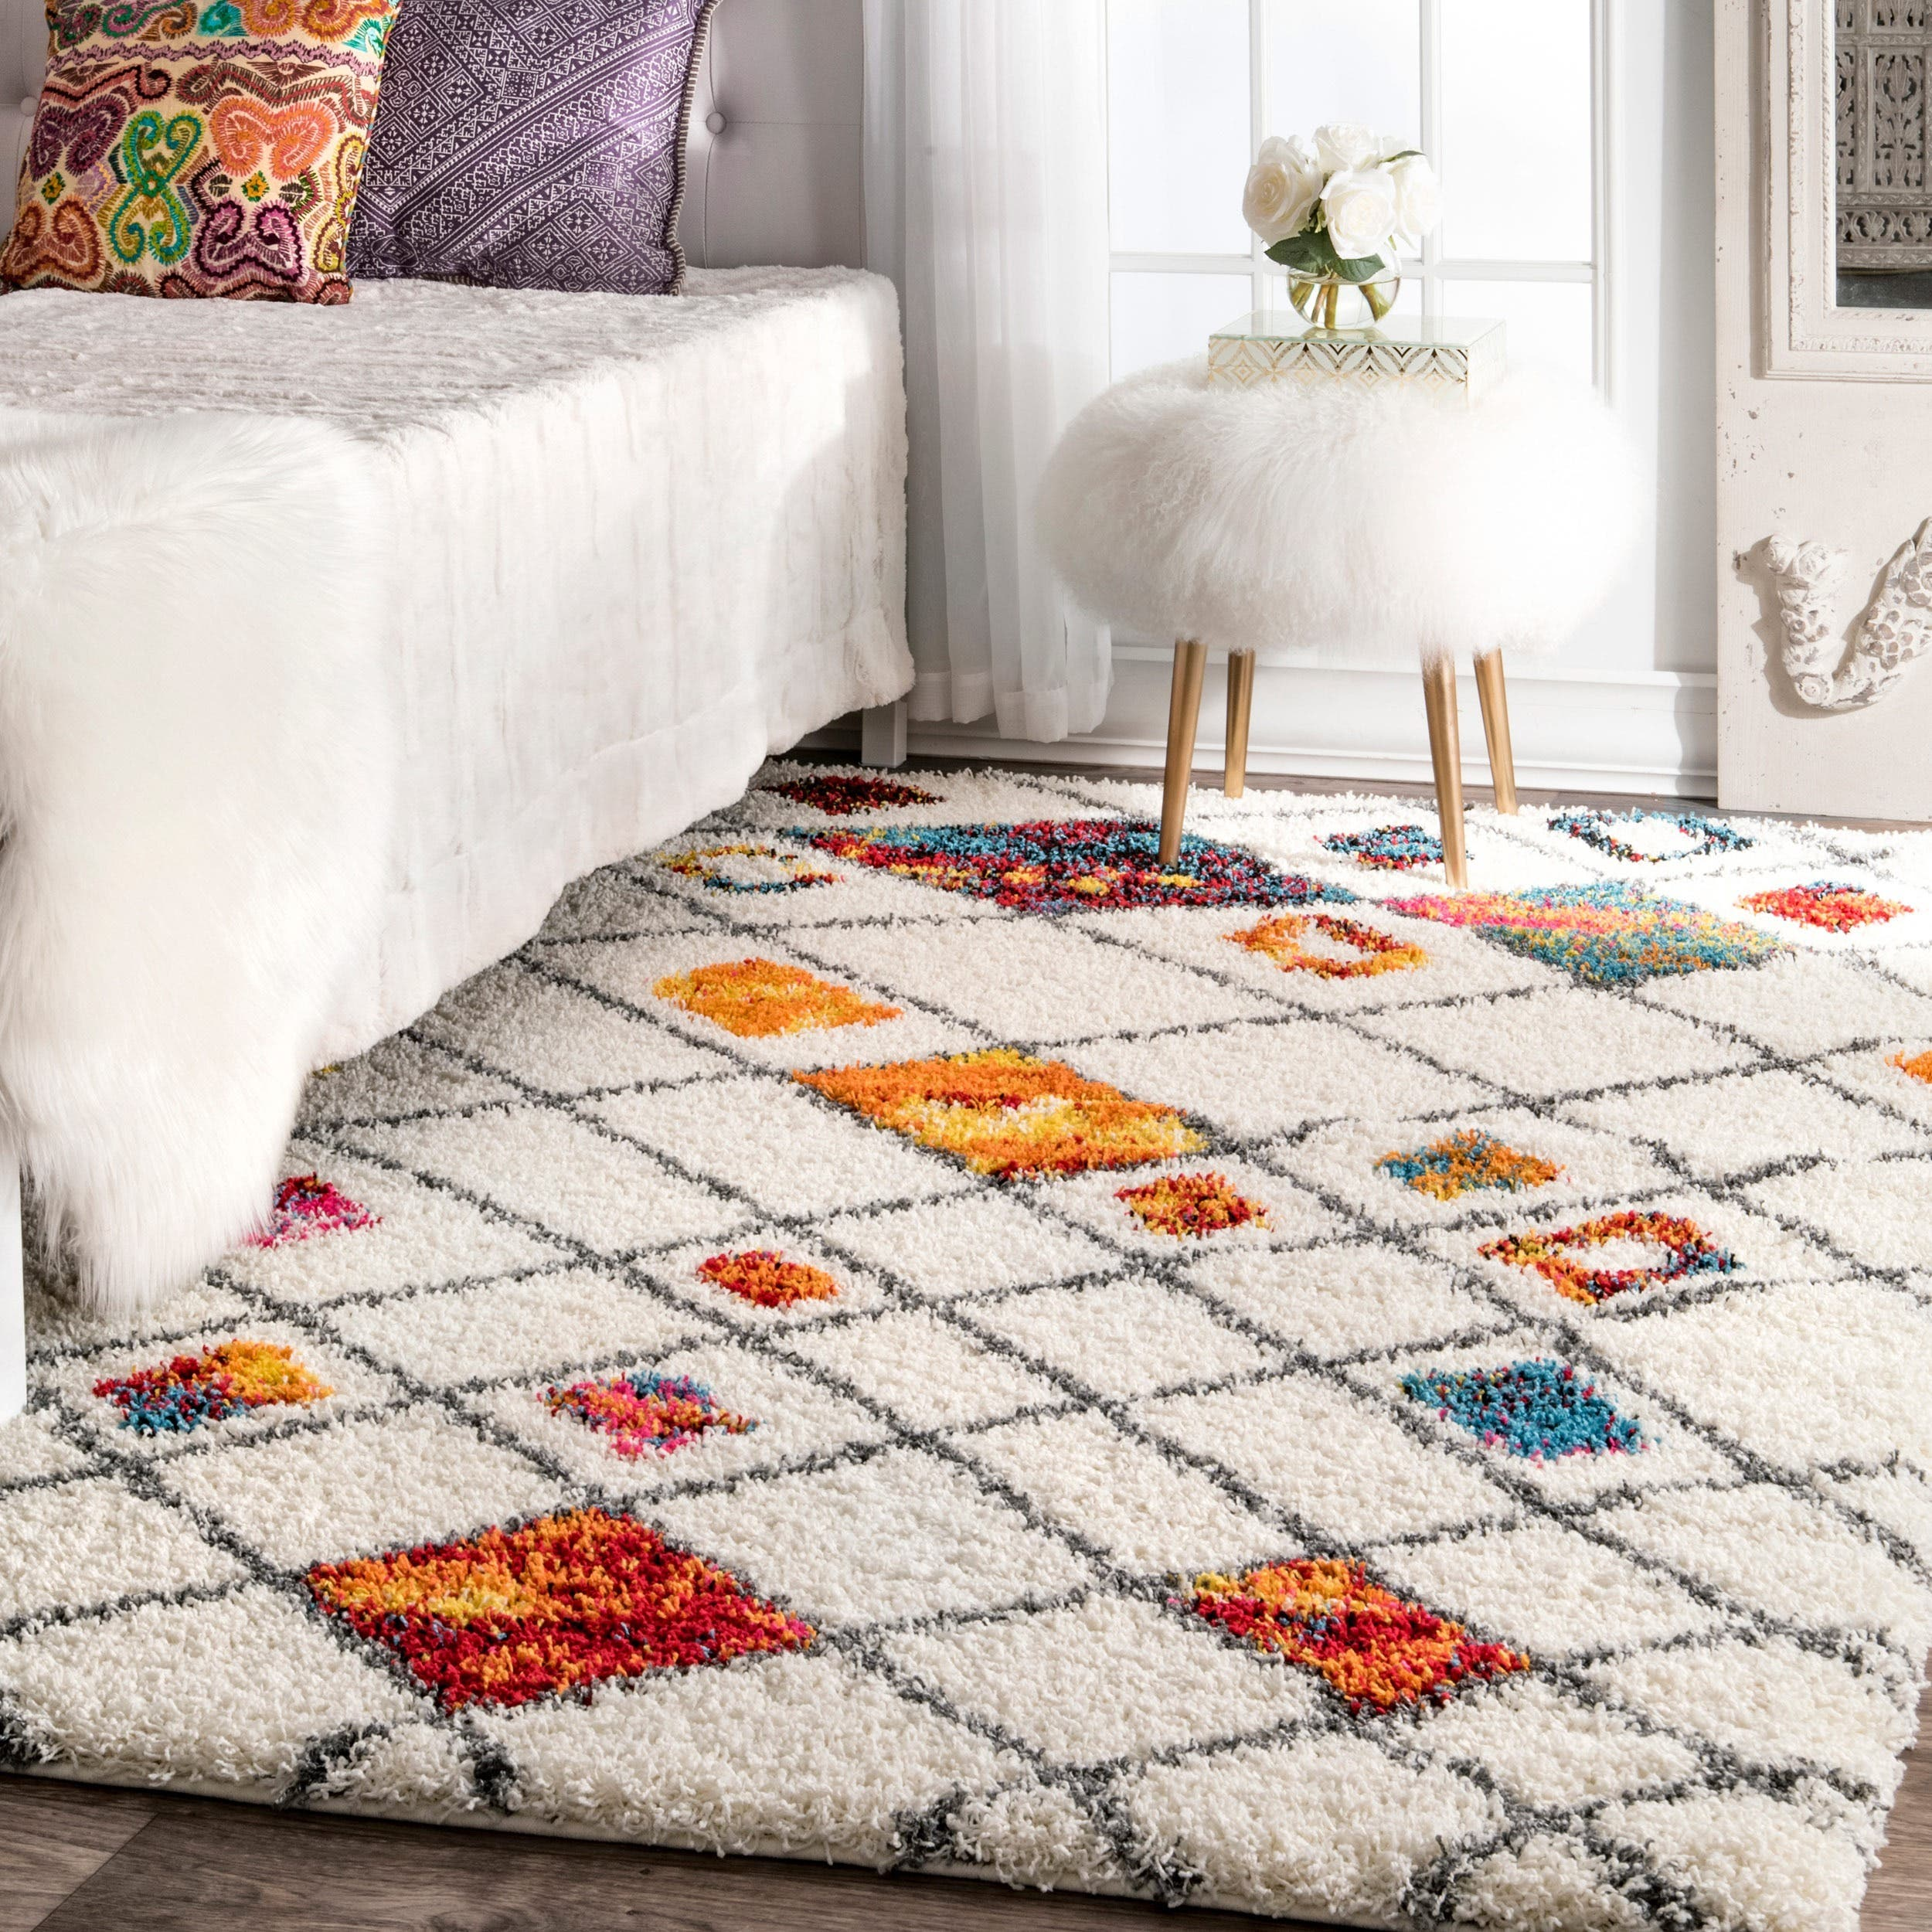 Buy 7x9 - 10x14 Rugs Online At Overstock.com